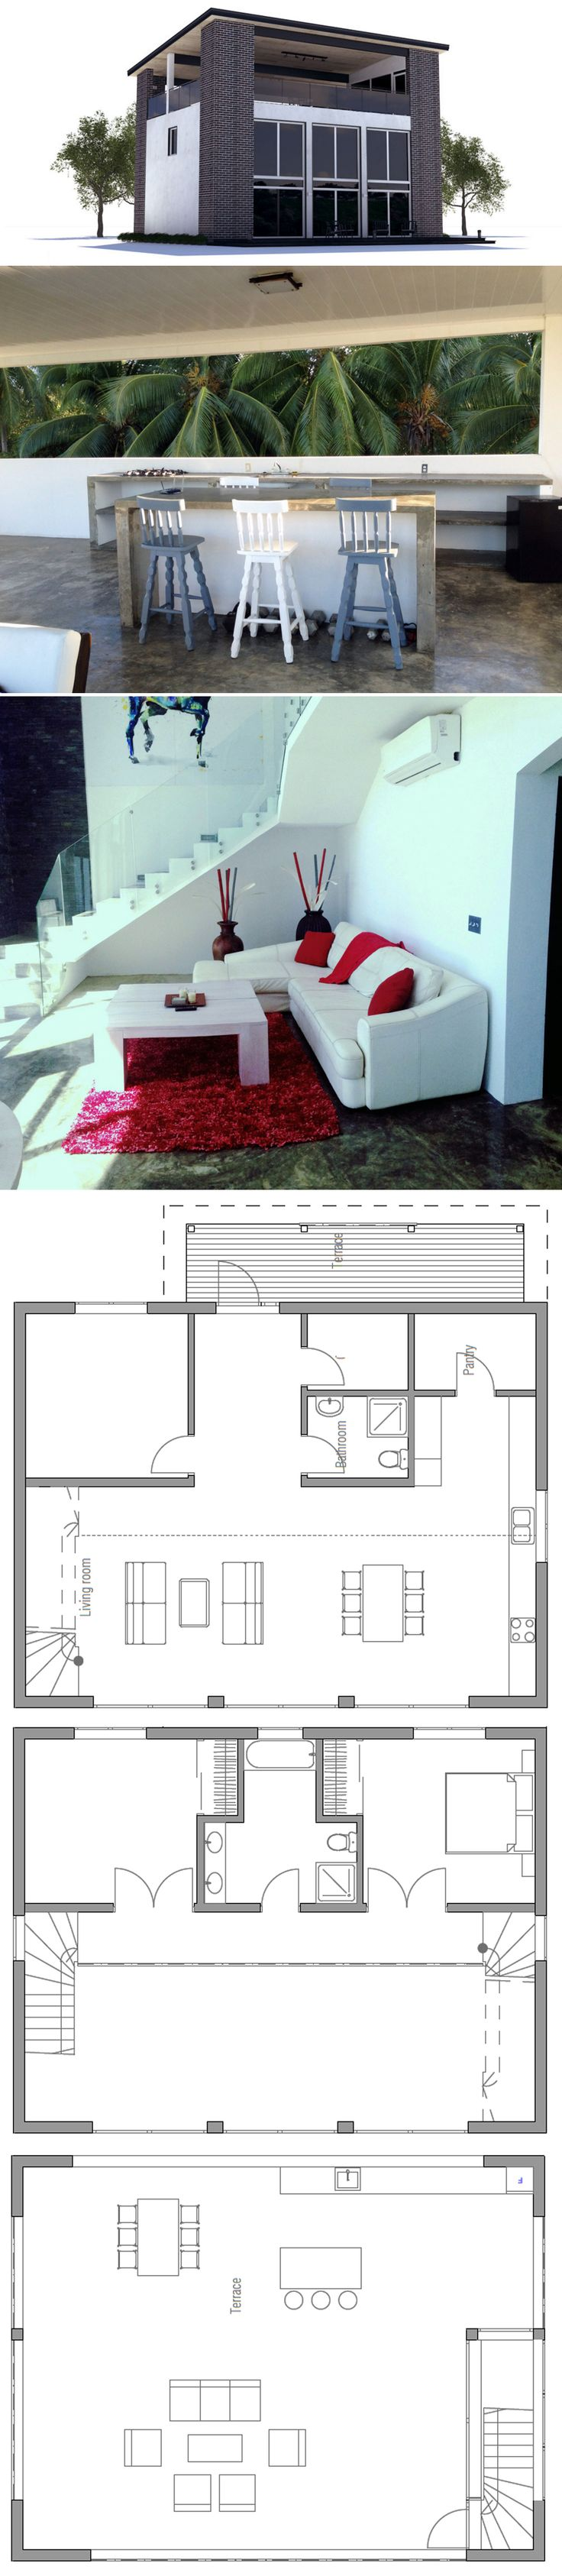 Modern House Plan With Rooftop Terrace, Three Bedrooms, High Ceilings